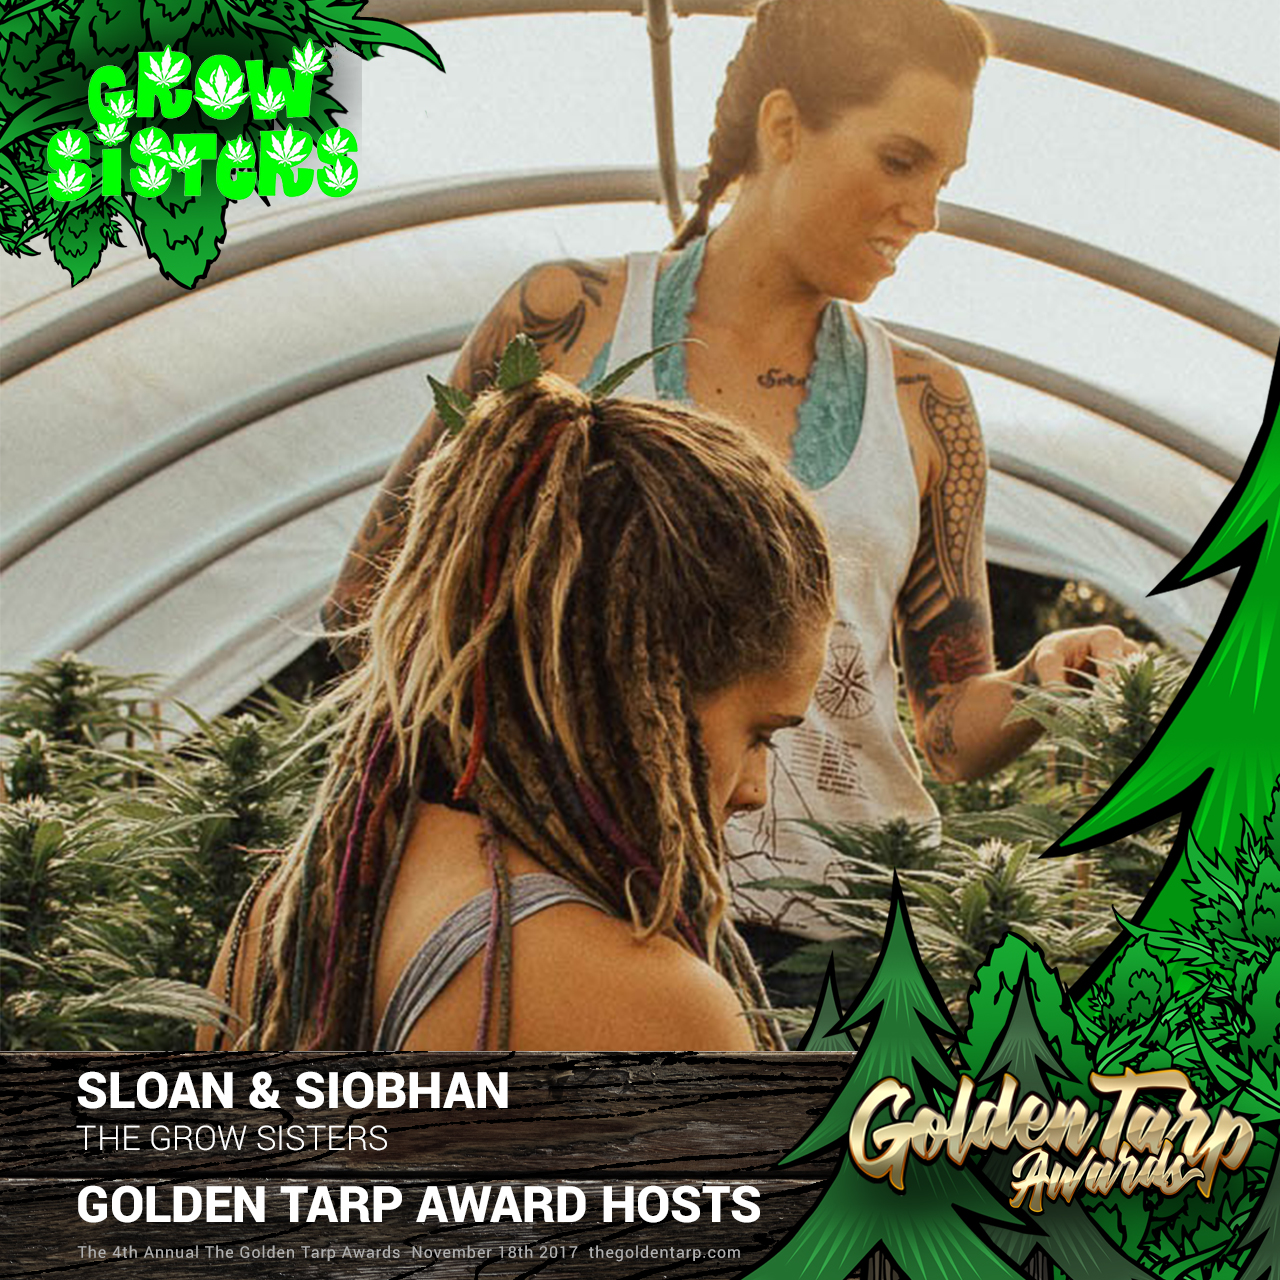 Grow Sisters Siobhan and Sloan are hosts for the Golden Tarp Awards